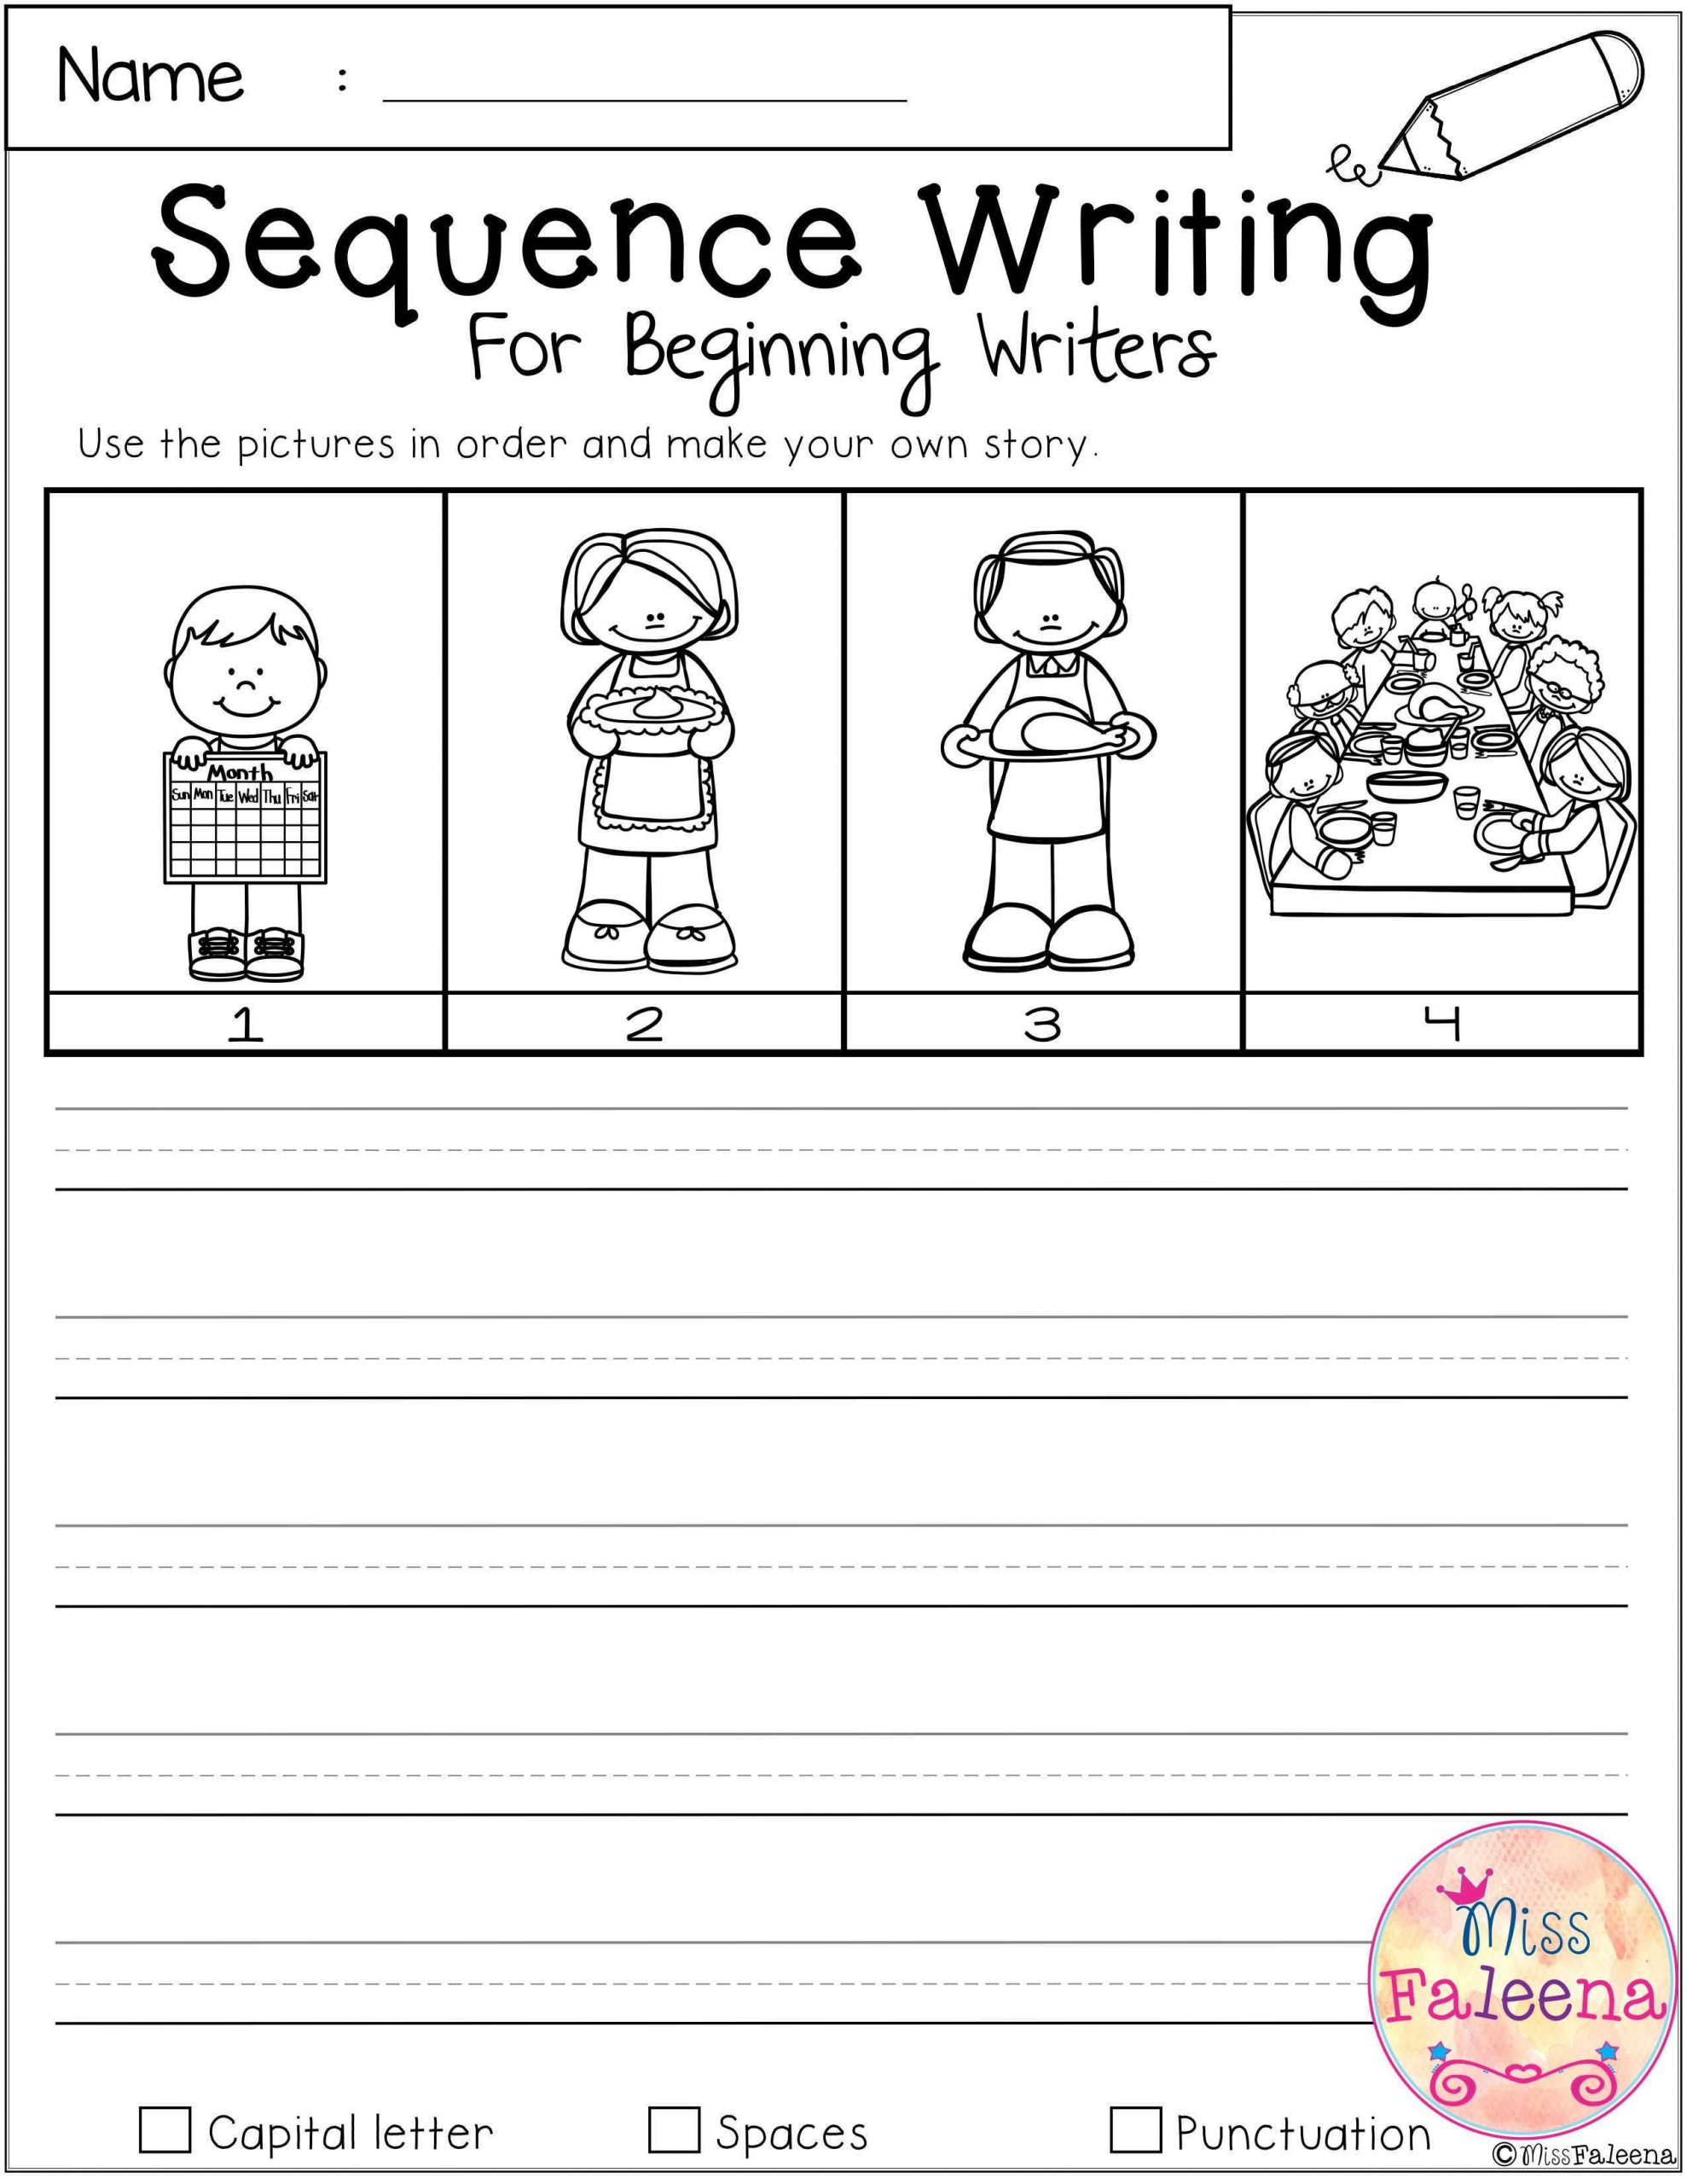 Sequence Worksheets for 3rd Grade November Sequence Writing for Beginning Writers